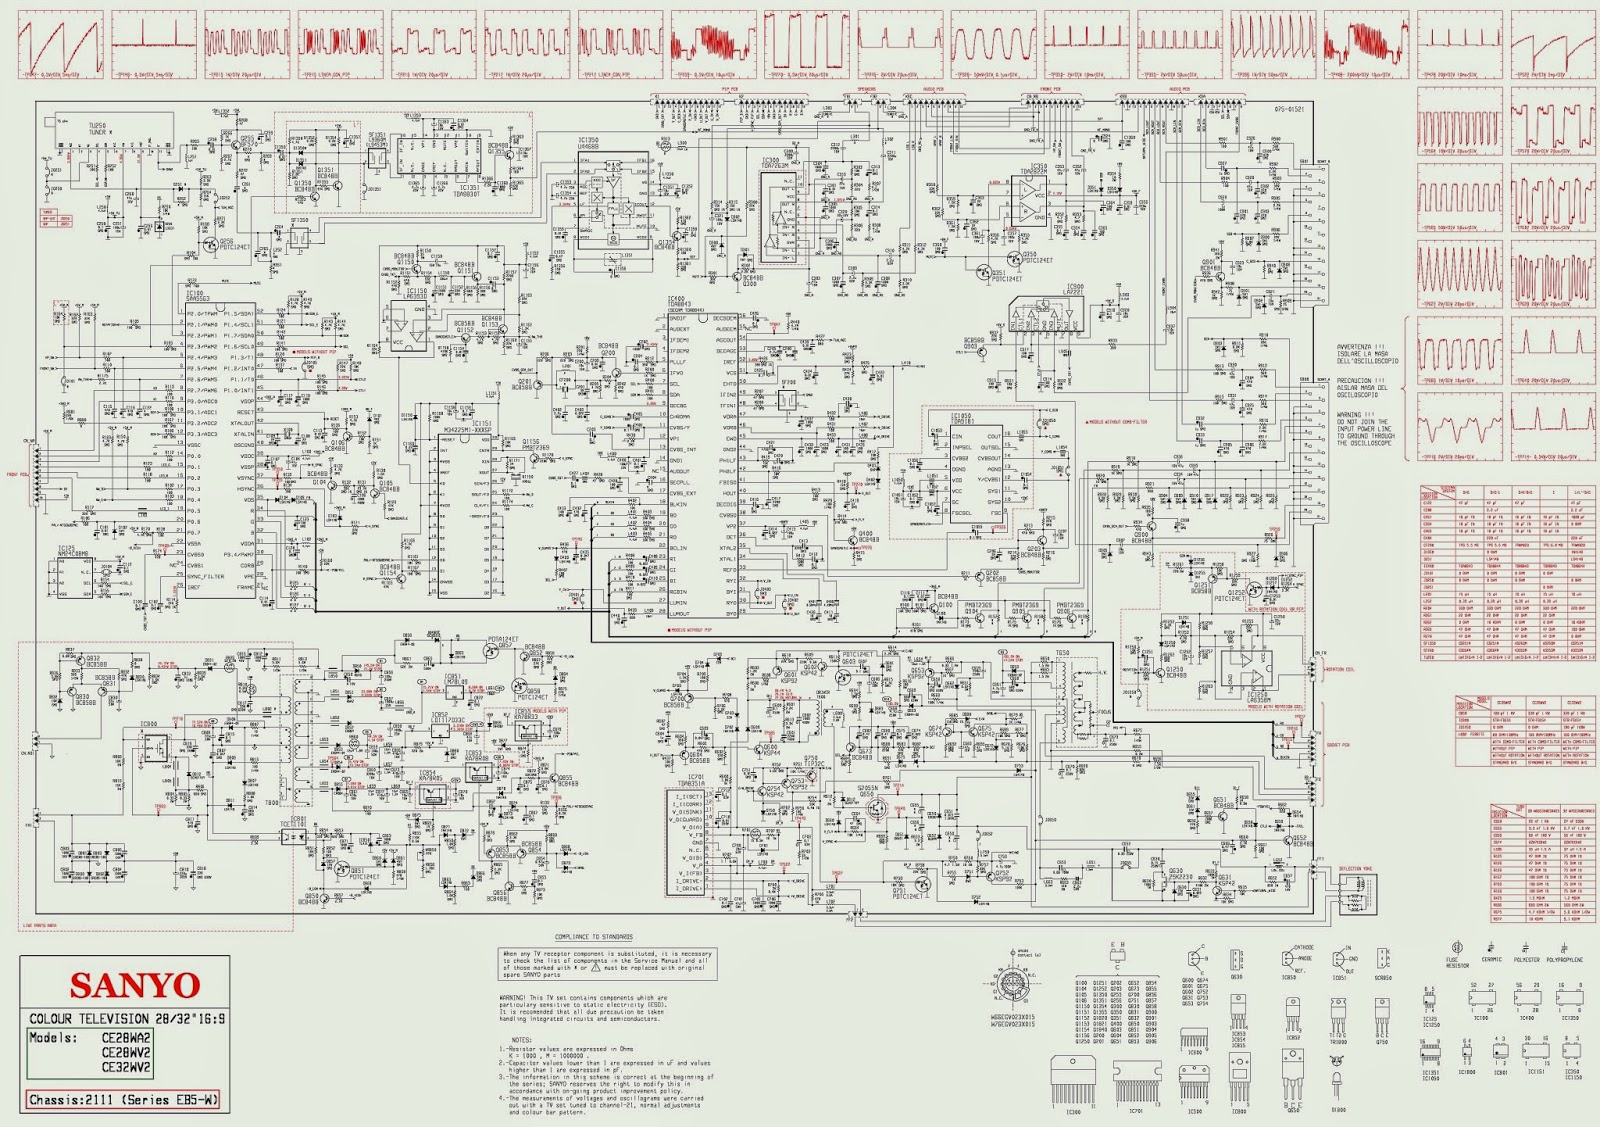 hight resolution of sanyo schematic diagram automotive wiring diagrams home theater systems wiring diagrams sanyo tv wiring diagram